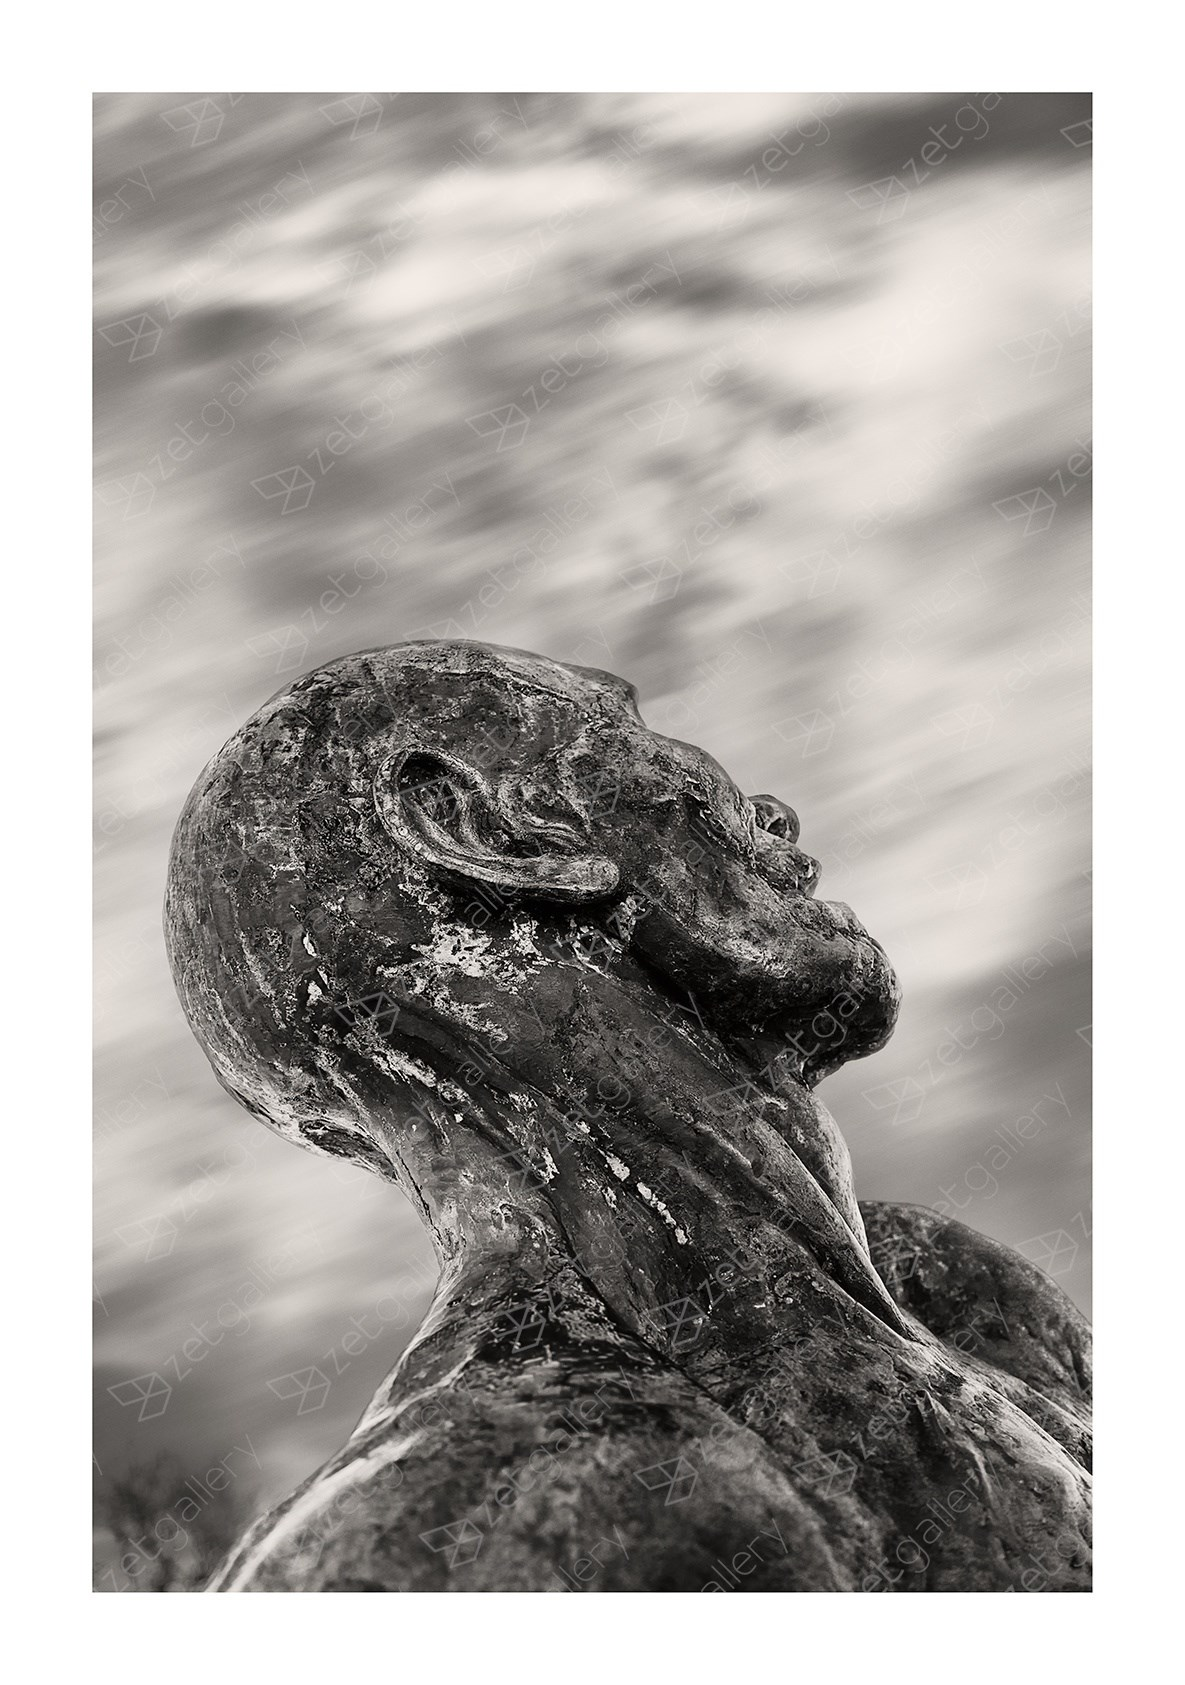 The Wondering Man, original B&W Digital Photography by Jorge Viegas